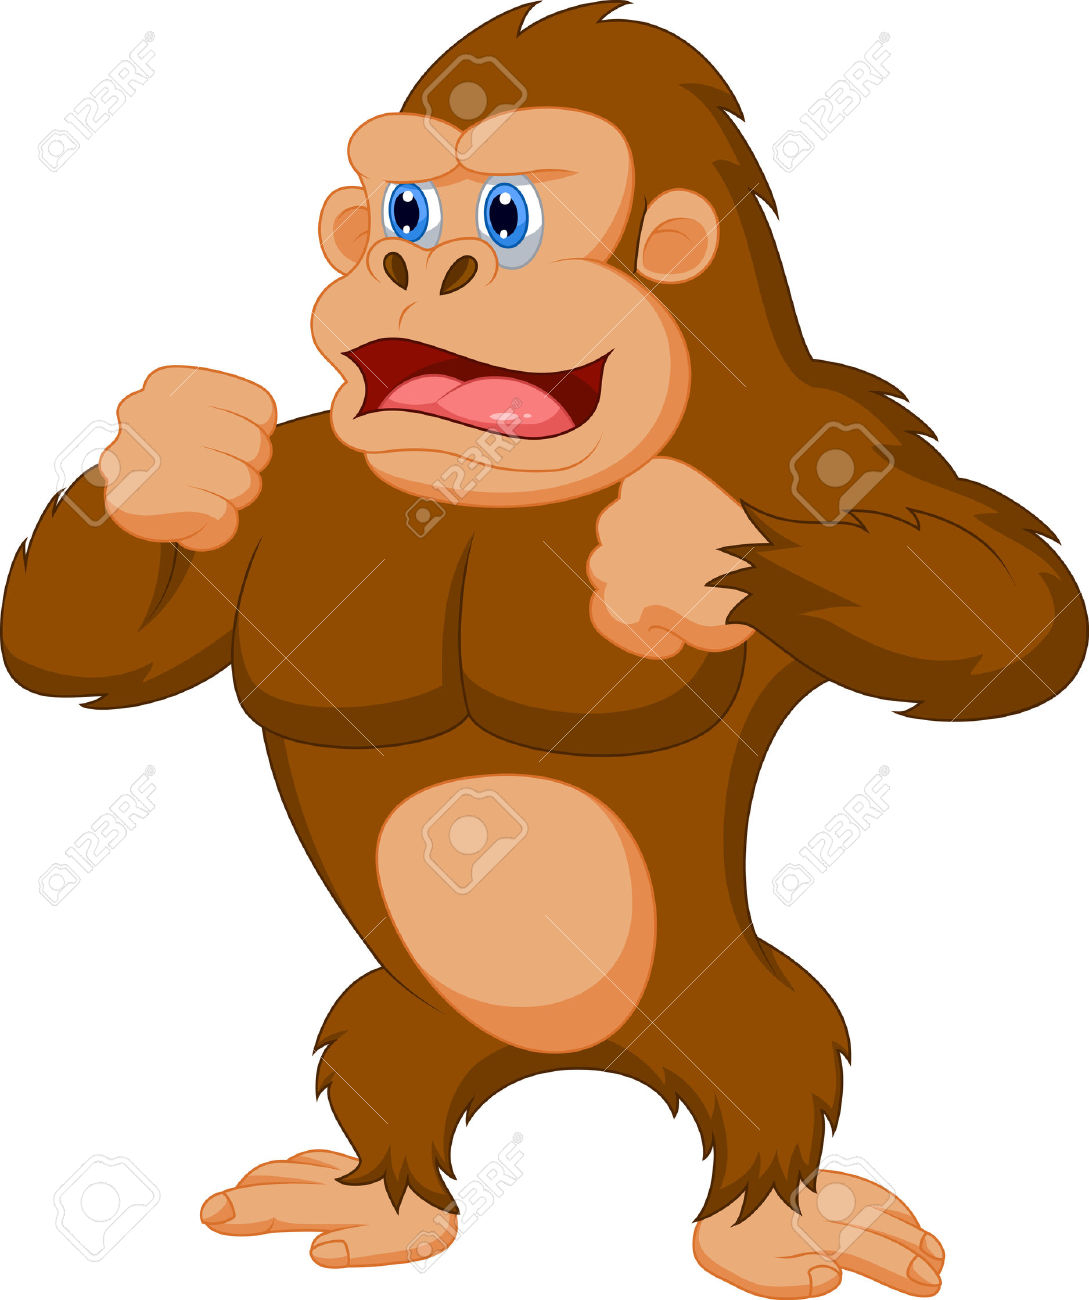 Gorilla clipart #15, Download drawings